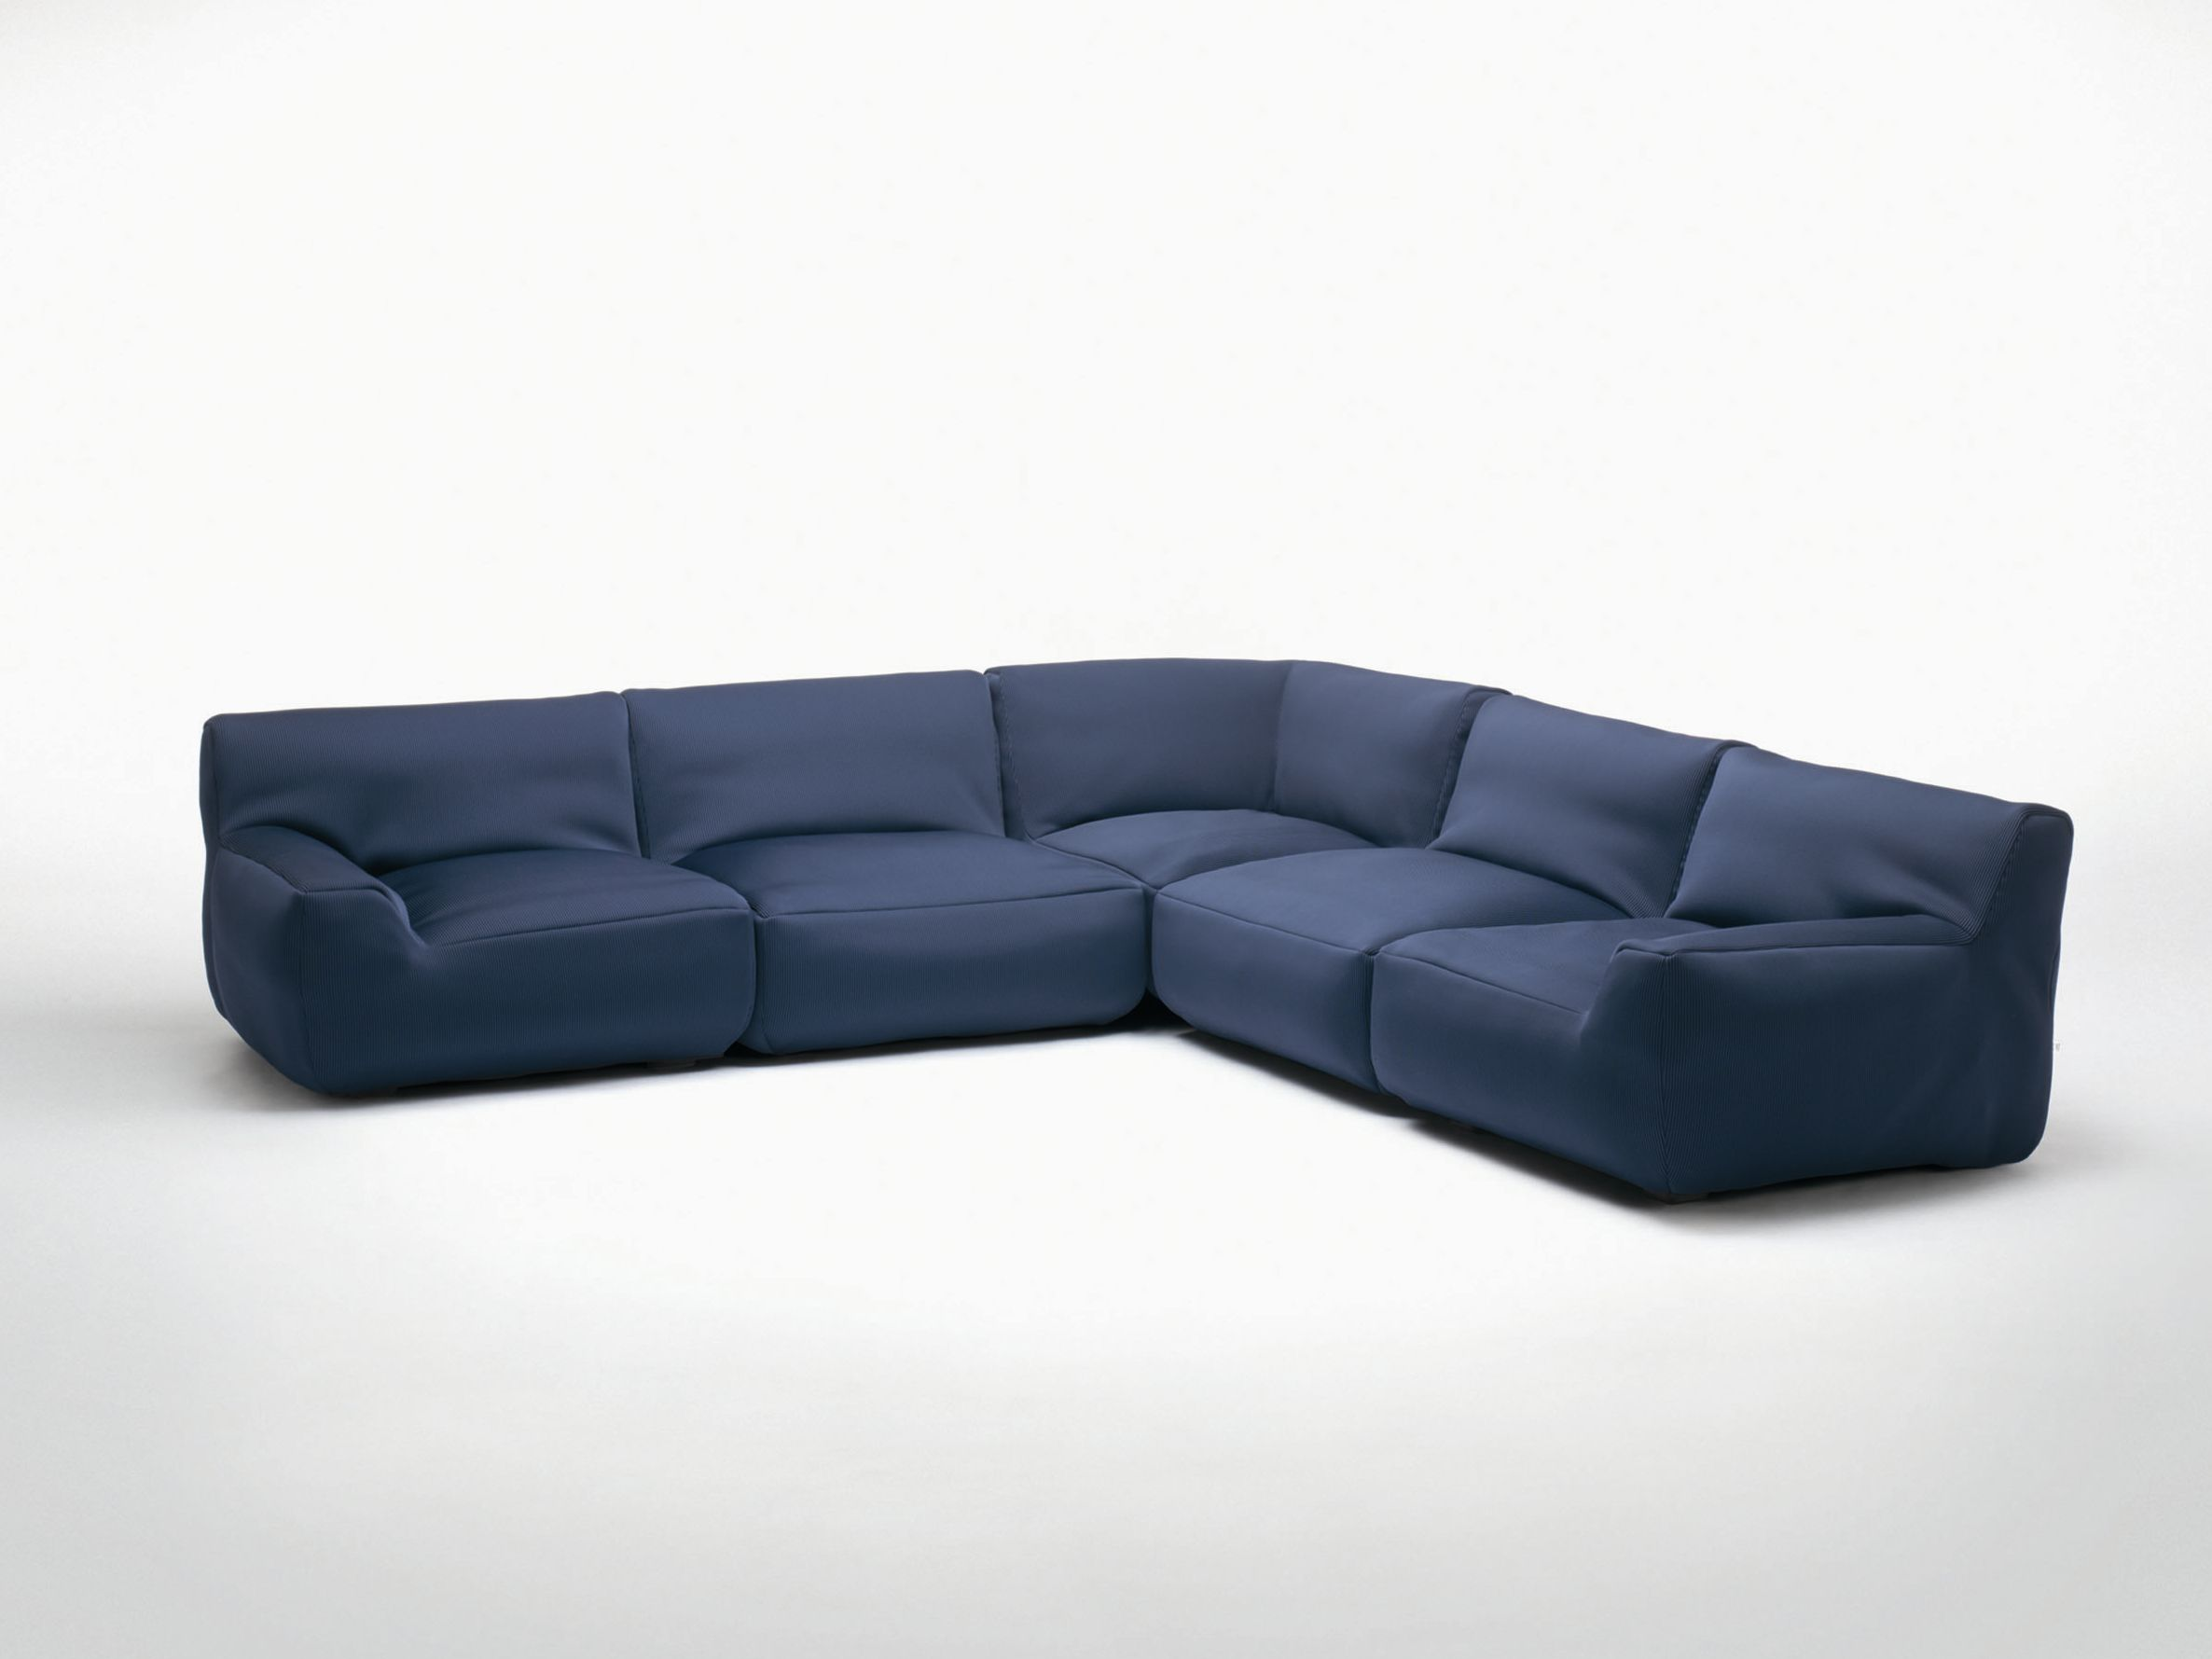 Corner Sofa Cover Design Diwan In Usa Sectional With Removable Welcome Aqua